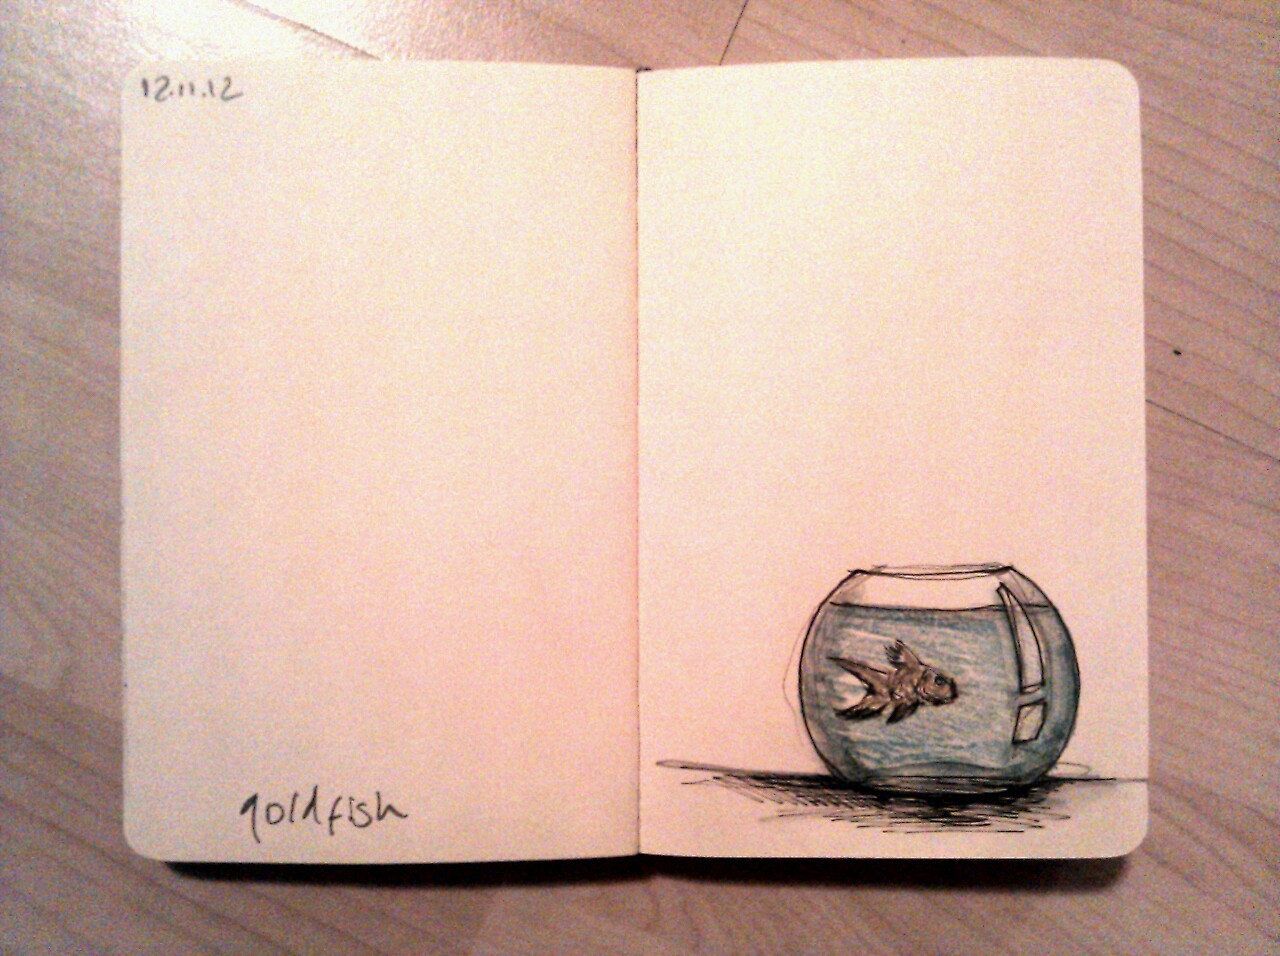 365 drawings later … day 286 … goldfish